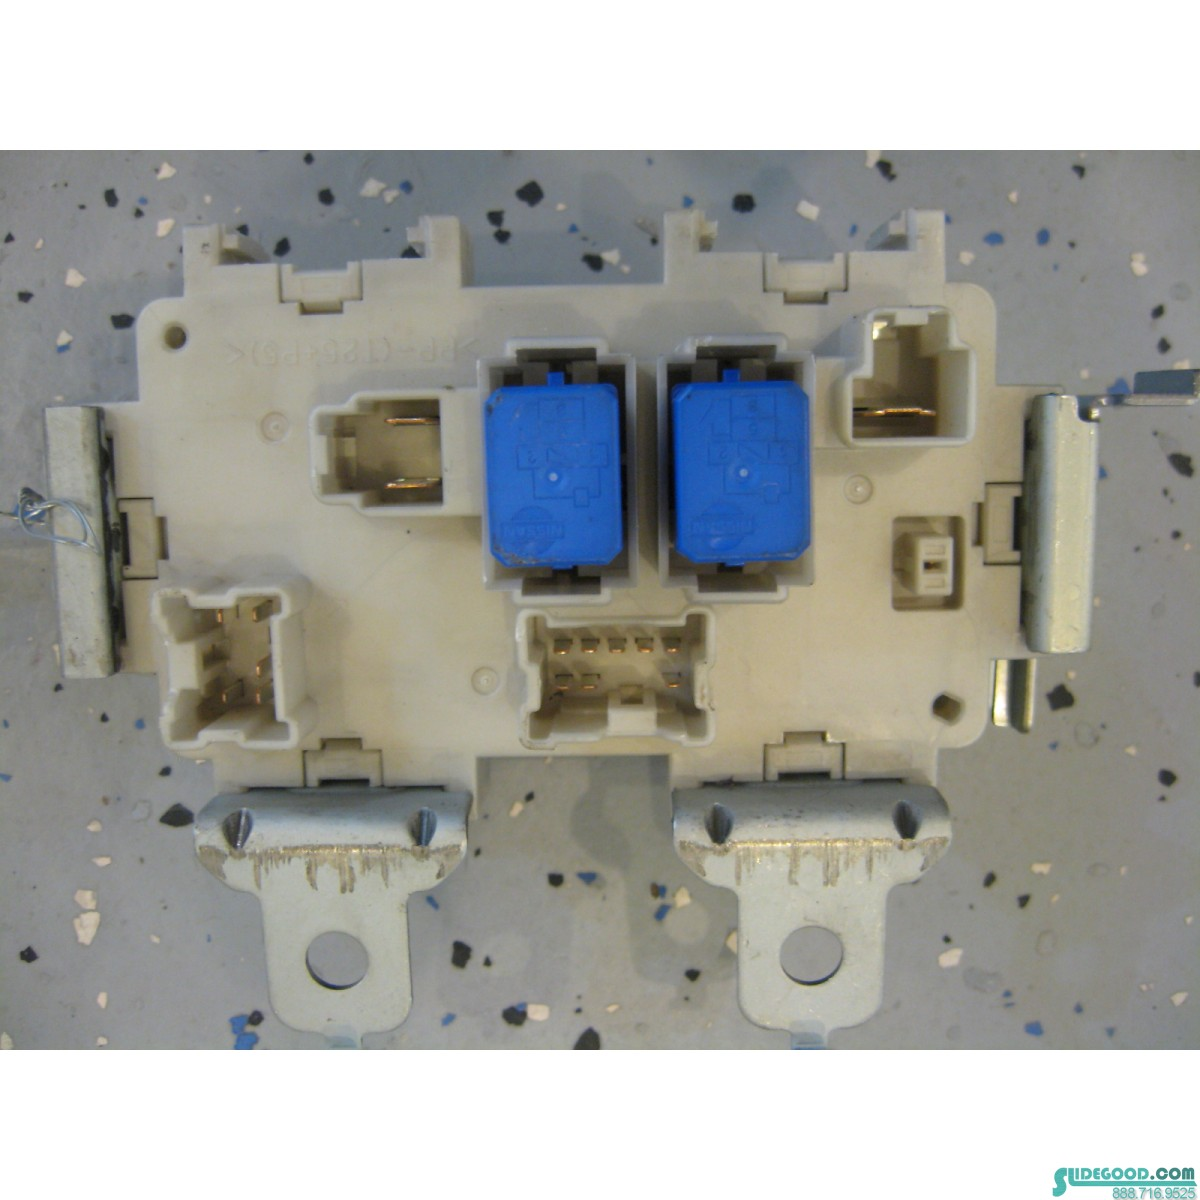 hight resolution of 04 nissan 350z interior fuse box am600 nice interior fuse box off a 04 nissan 350z automatic touring convertible r1783